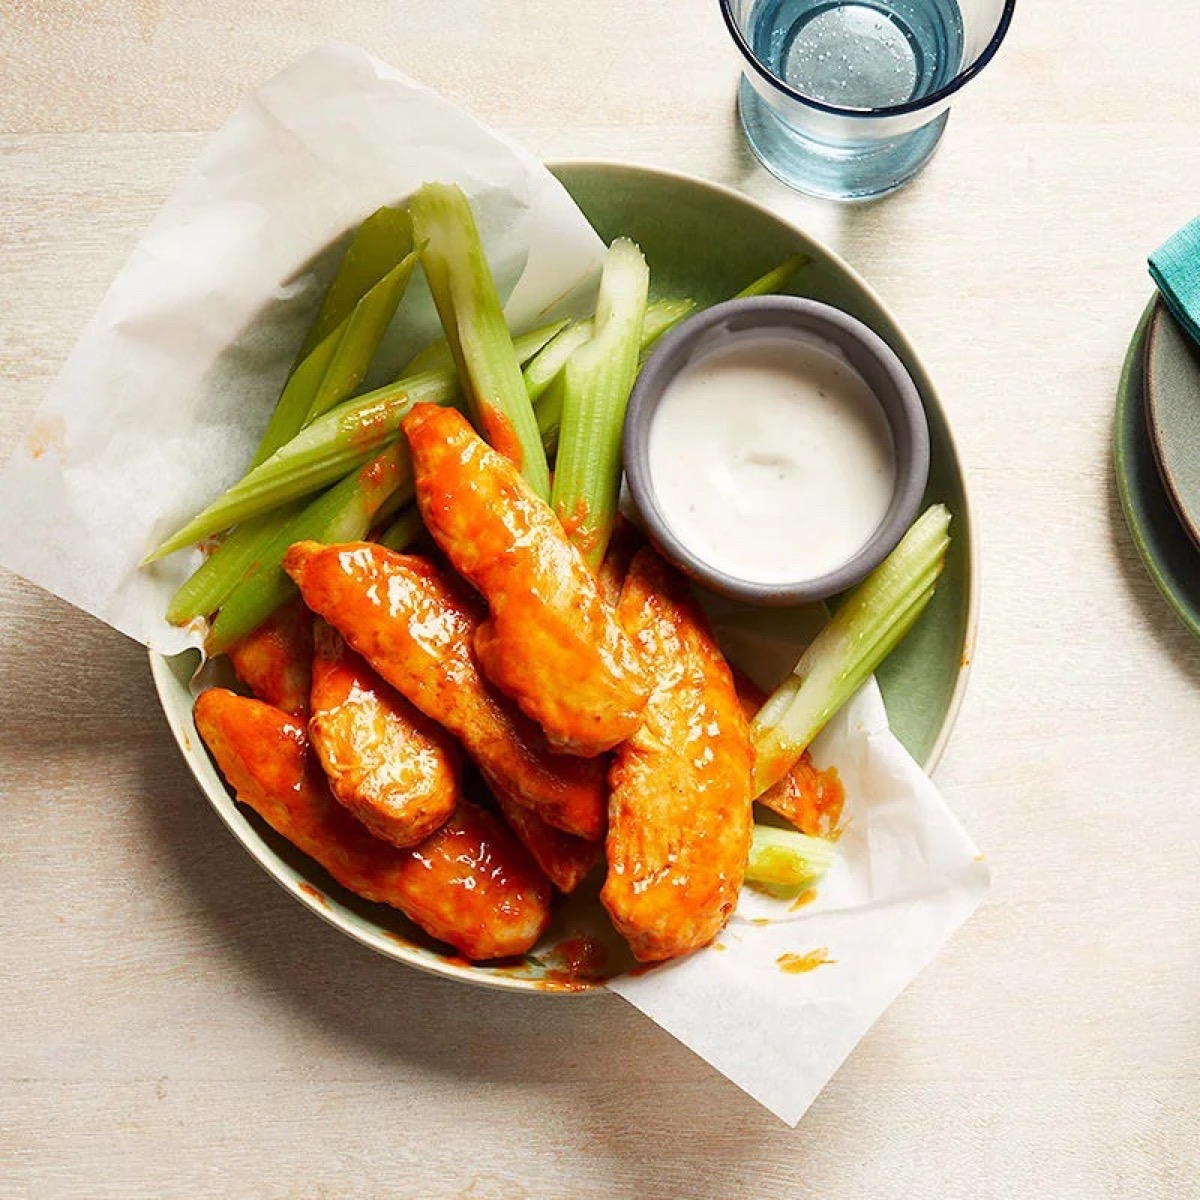 buffalo chicken fingers with celery and blue cheese